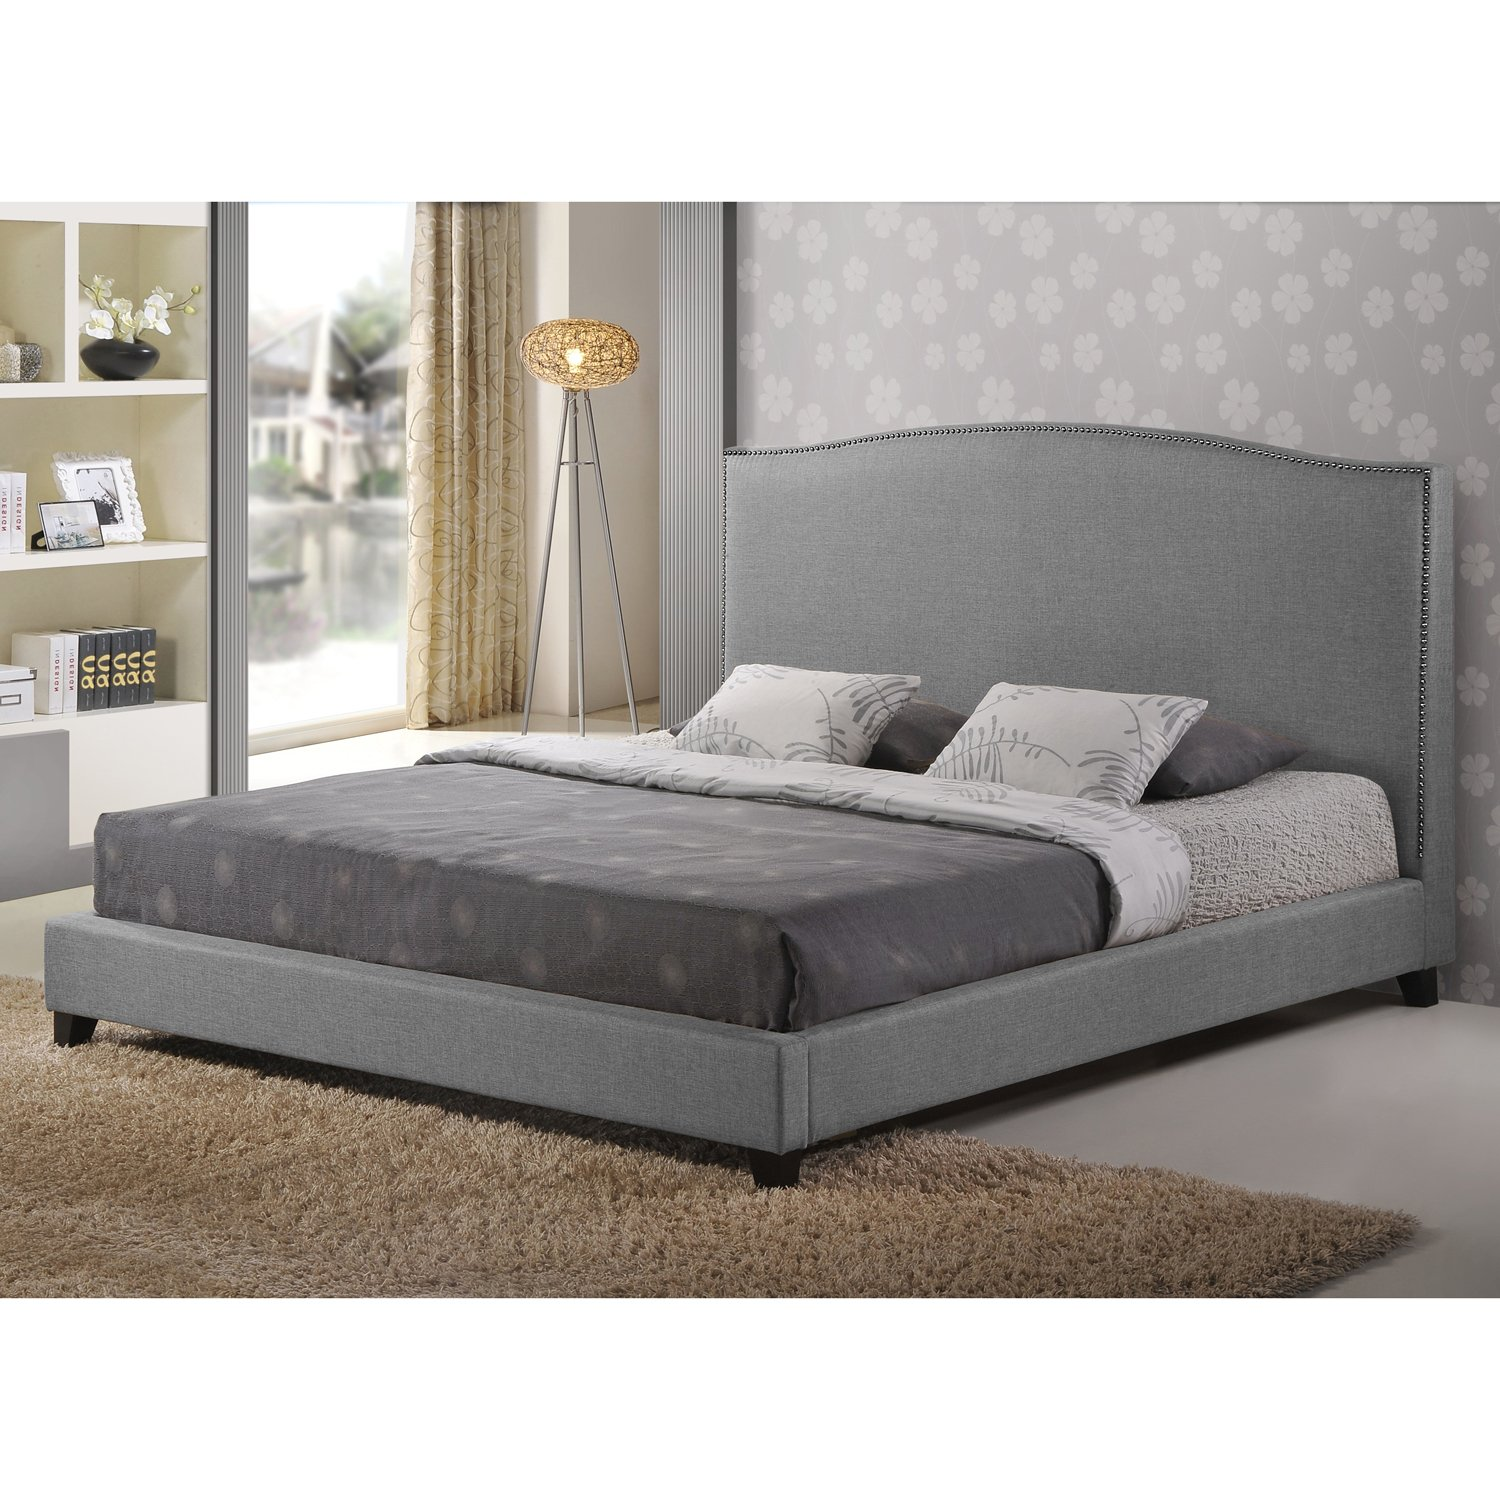 brown zm coco bed modern size product leather platform queen rossetto